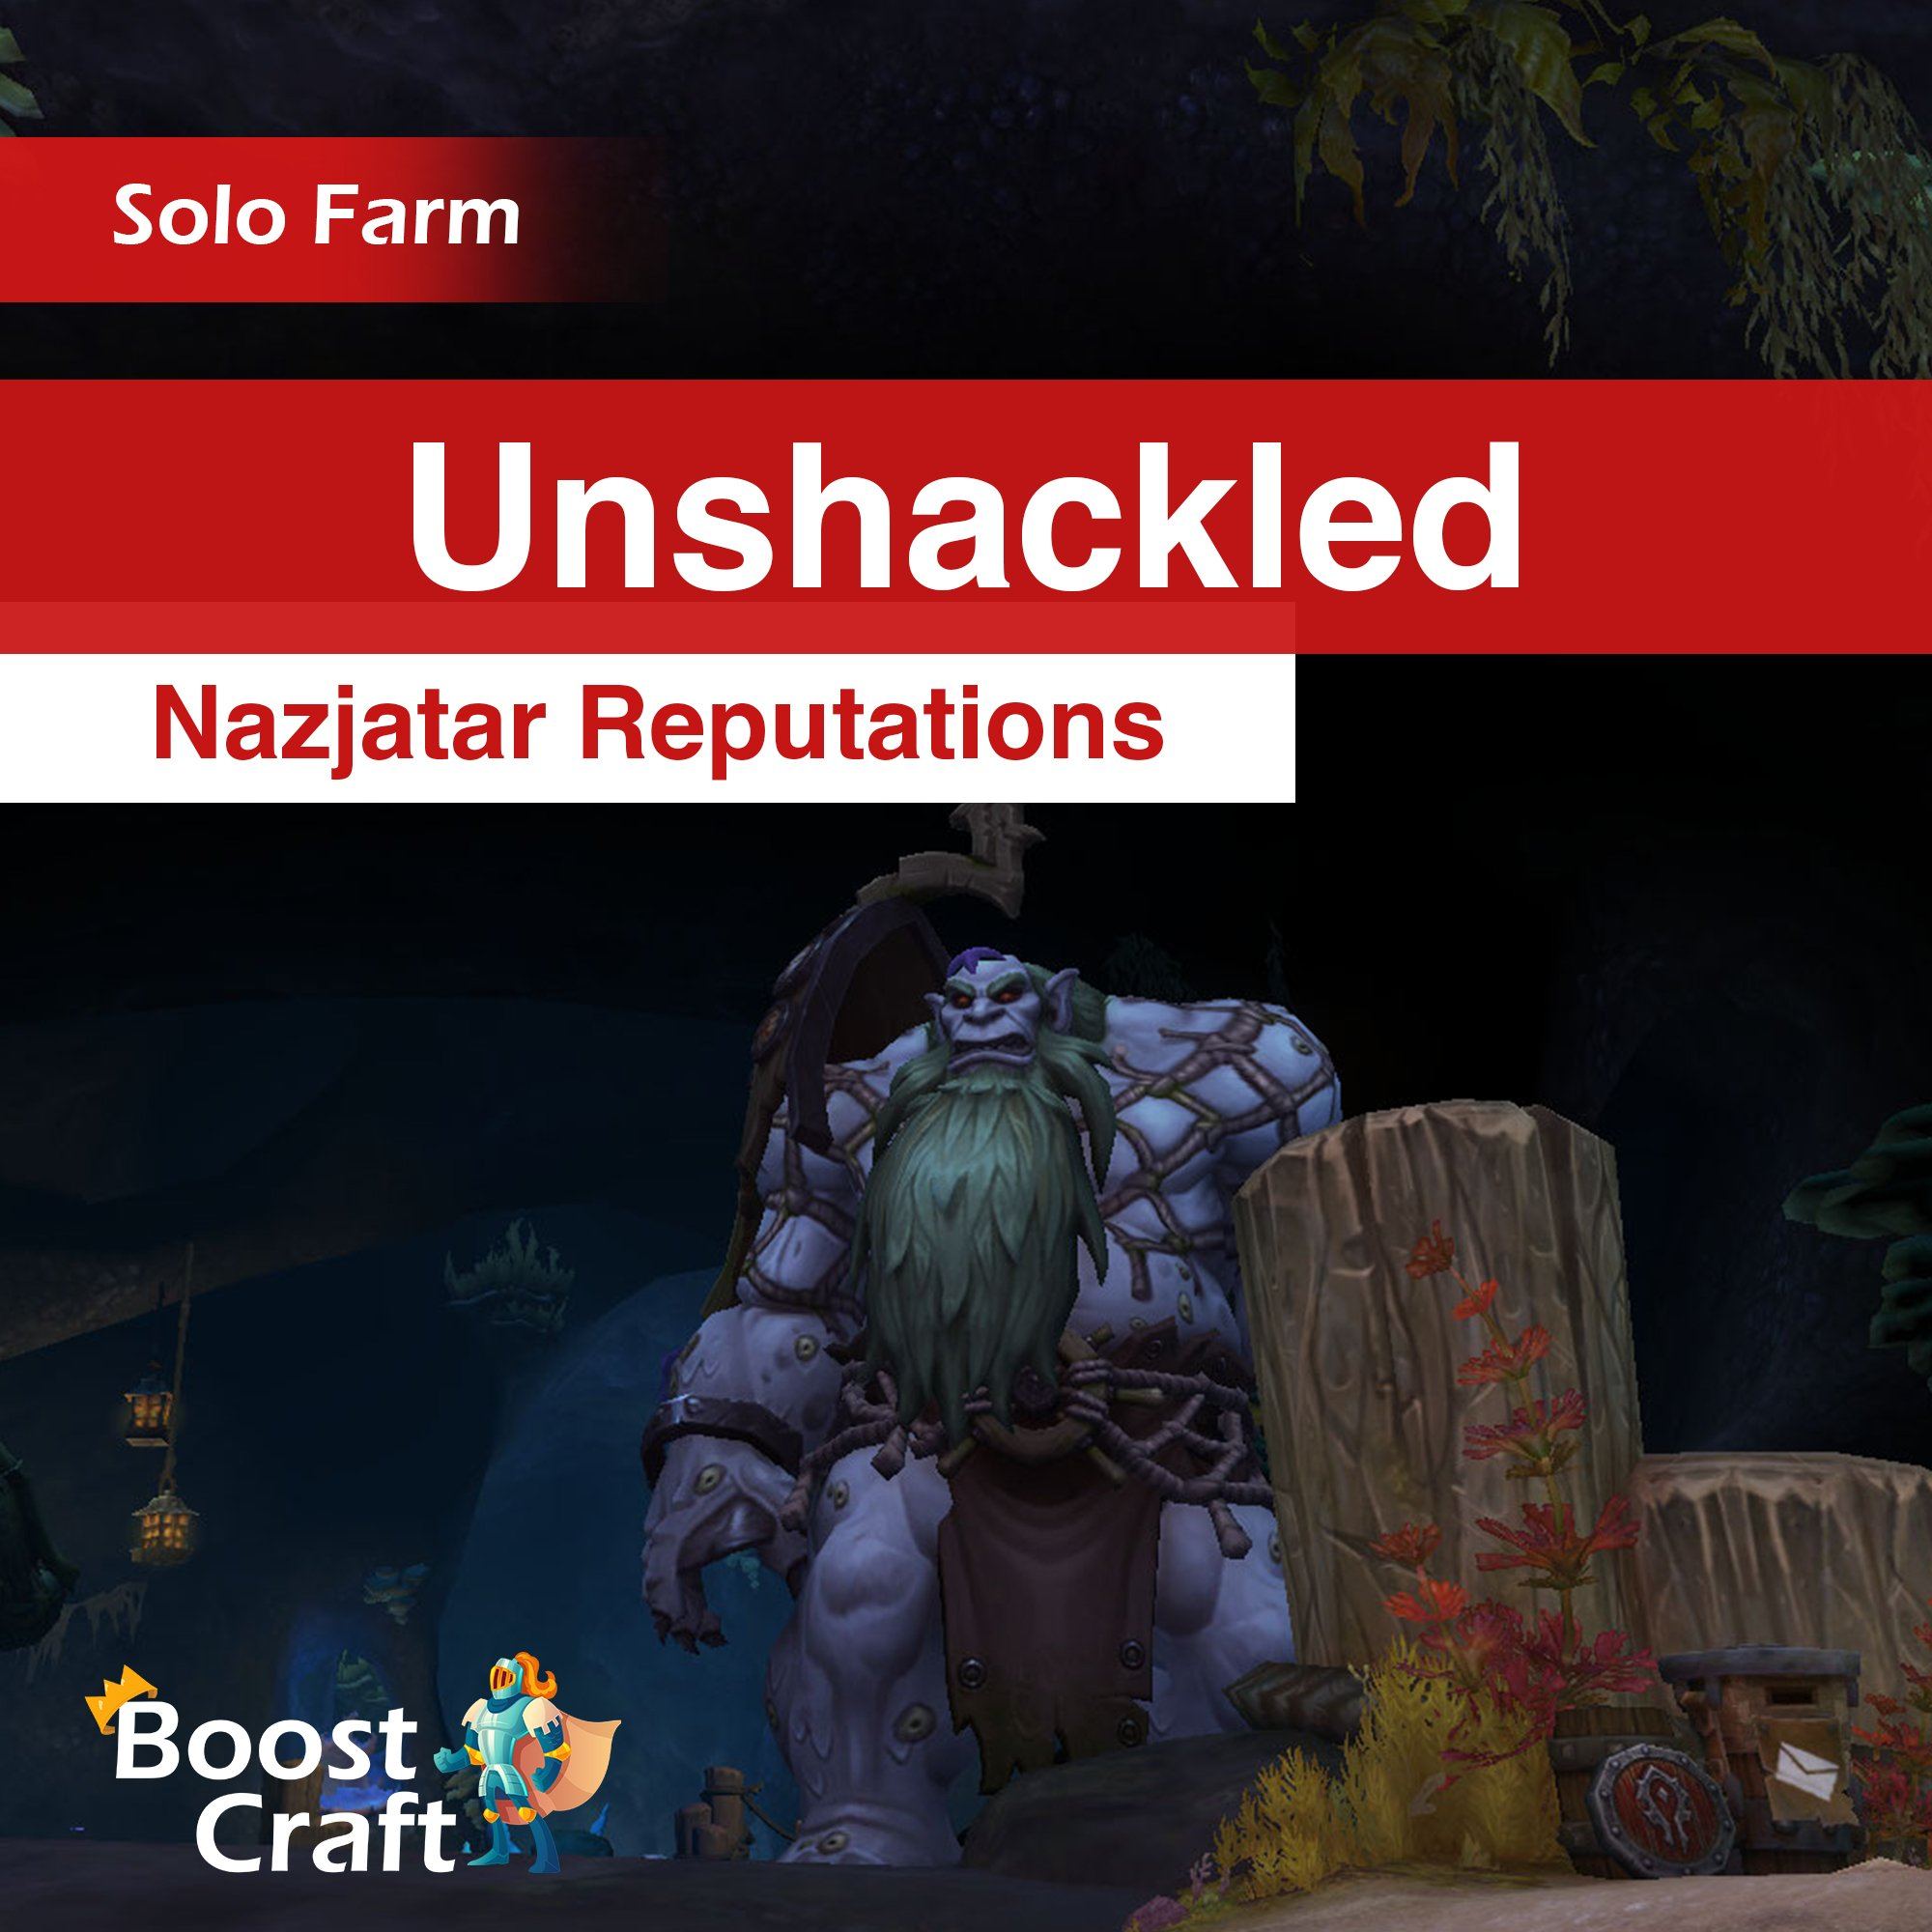 The Unshackled – 8.2 Nazjarat Reputation Farm